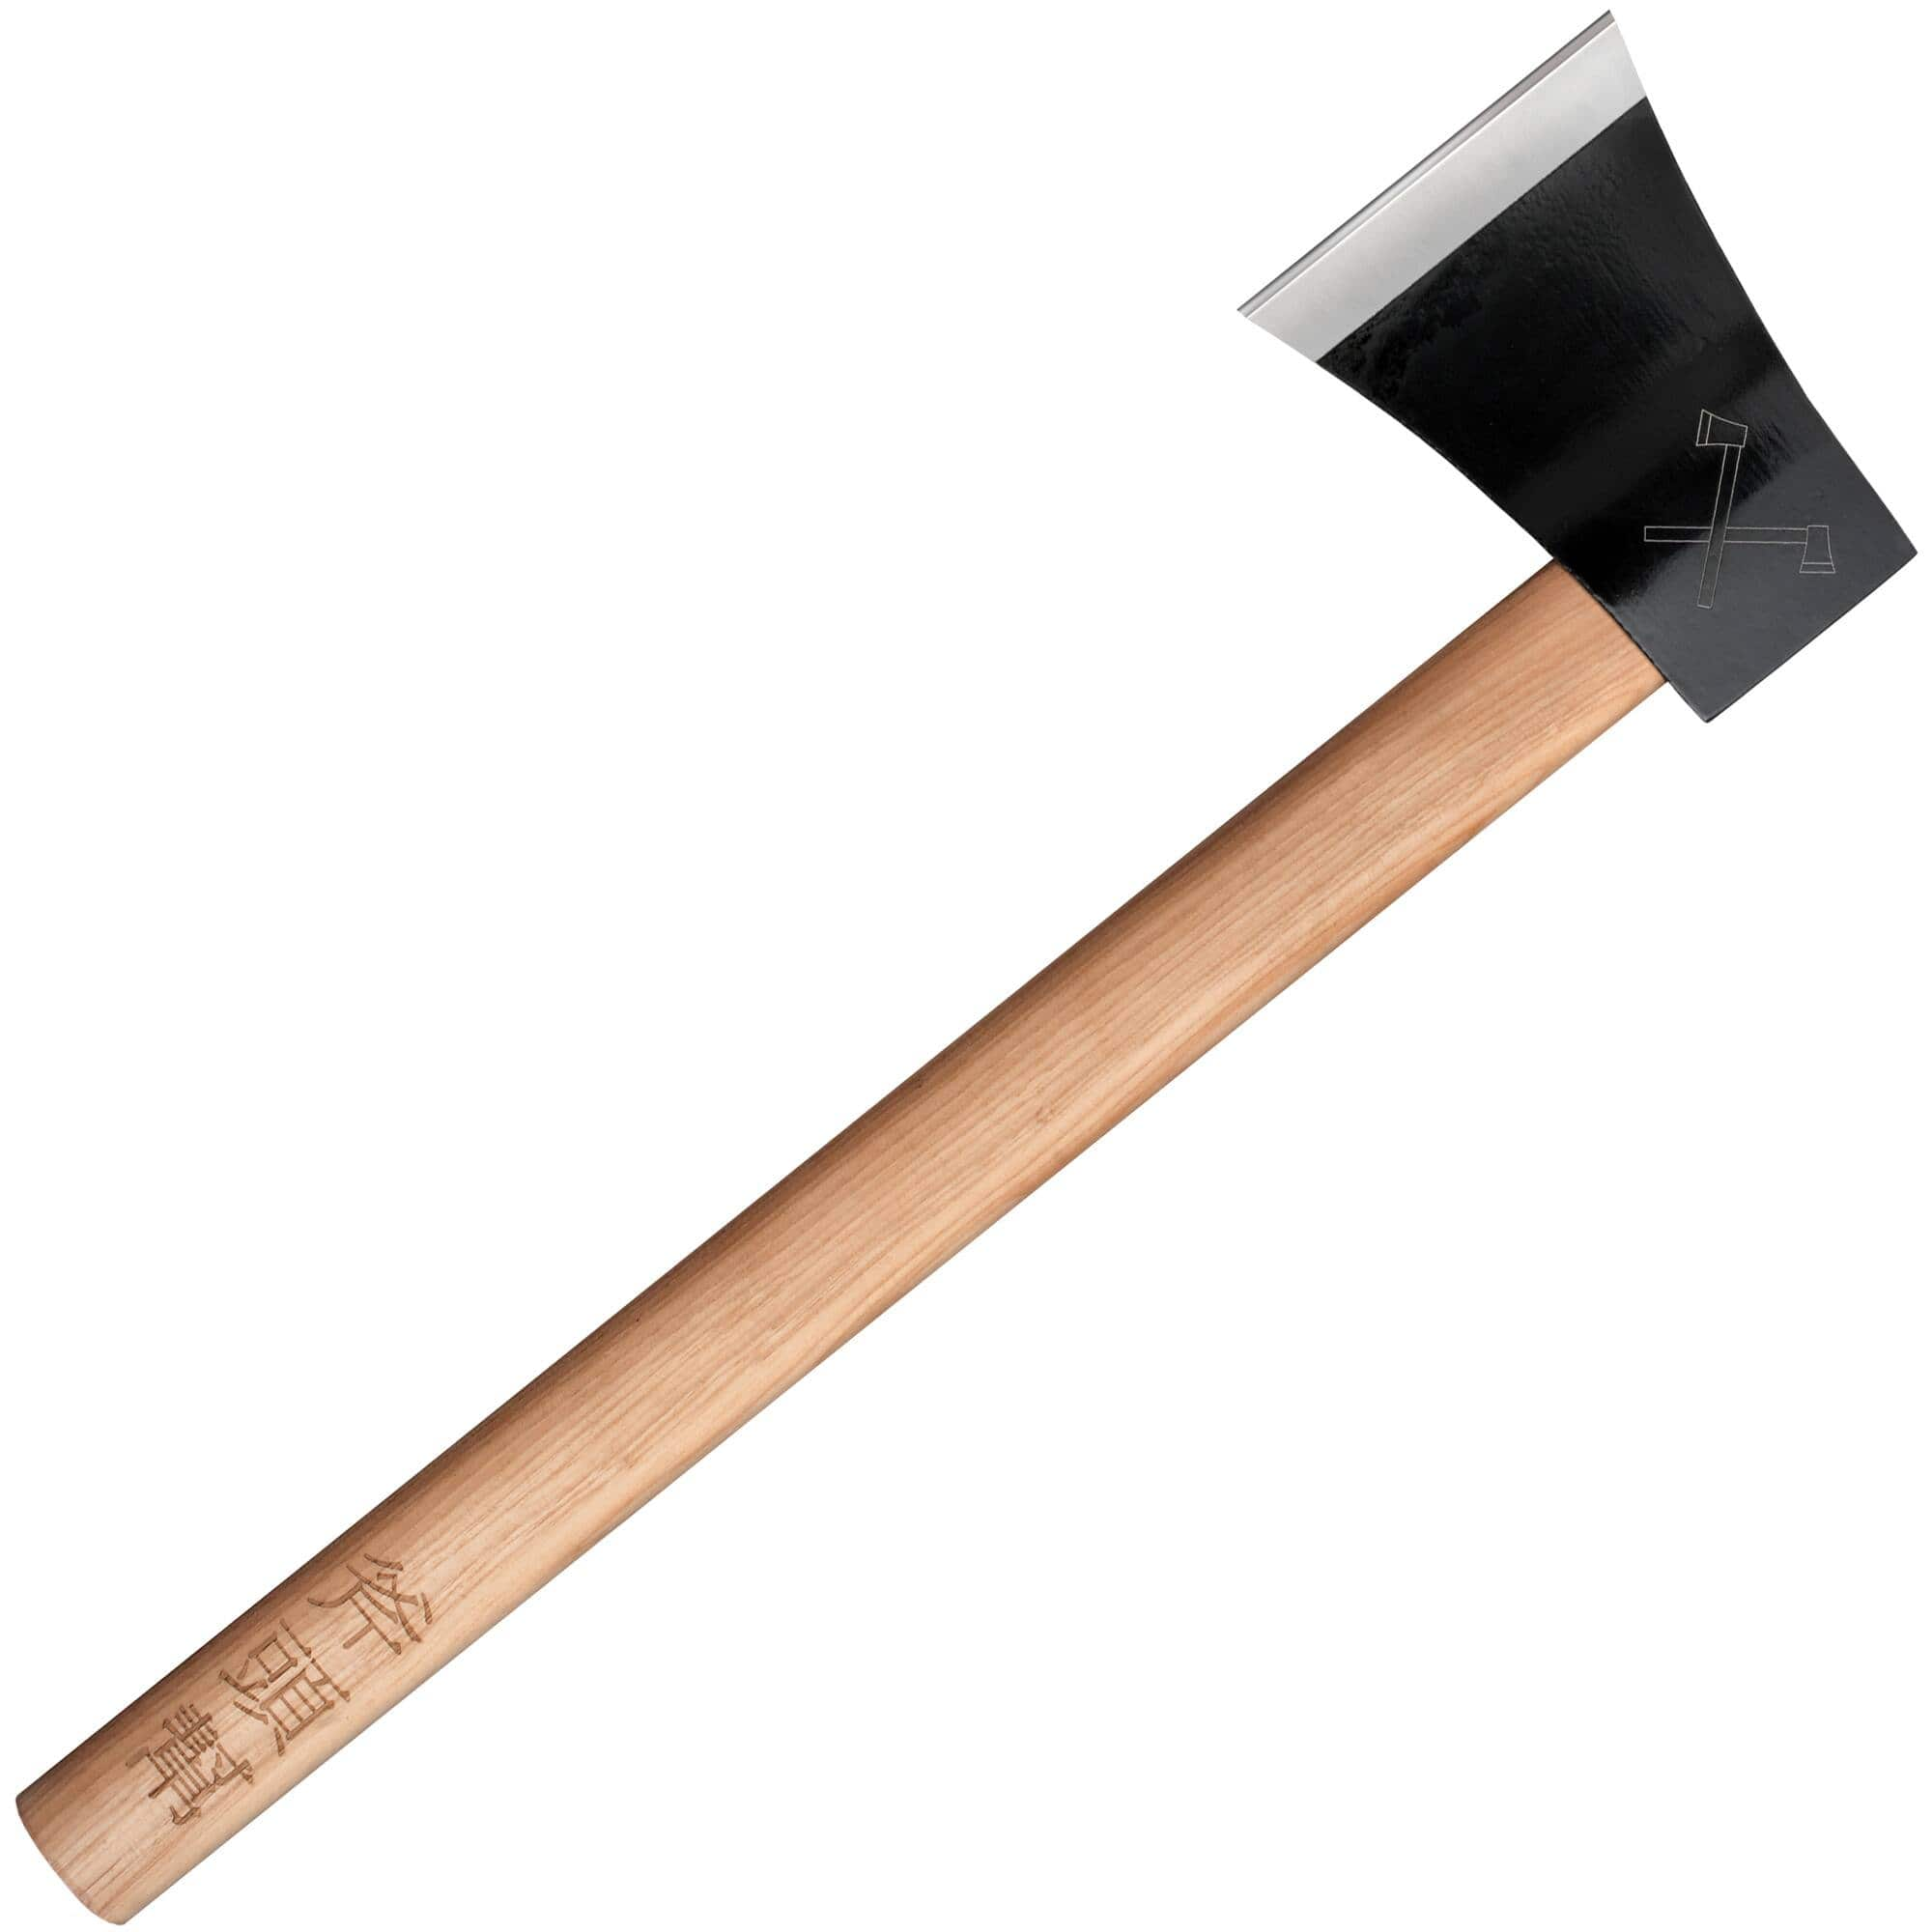 "Cold Steel 20"" 21 oz Carbon Steel Chinese Kung Fu Axe Gang Hatchet Throwing Axe $22.99 + FS"